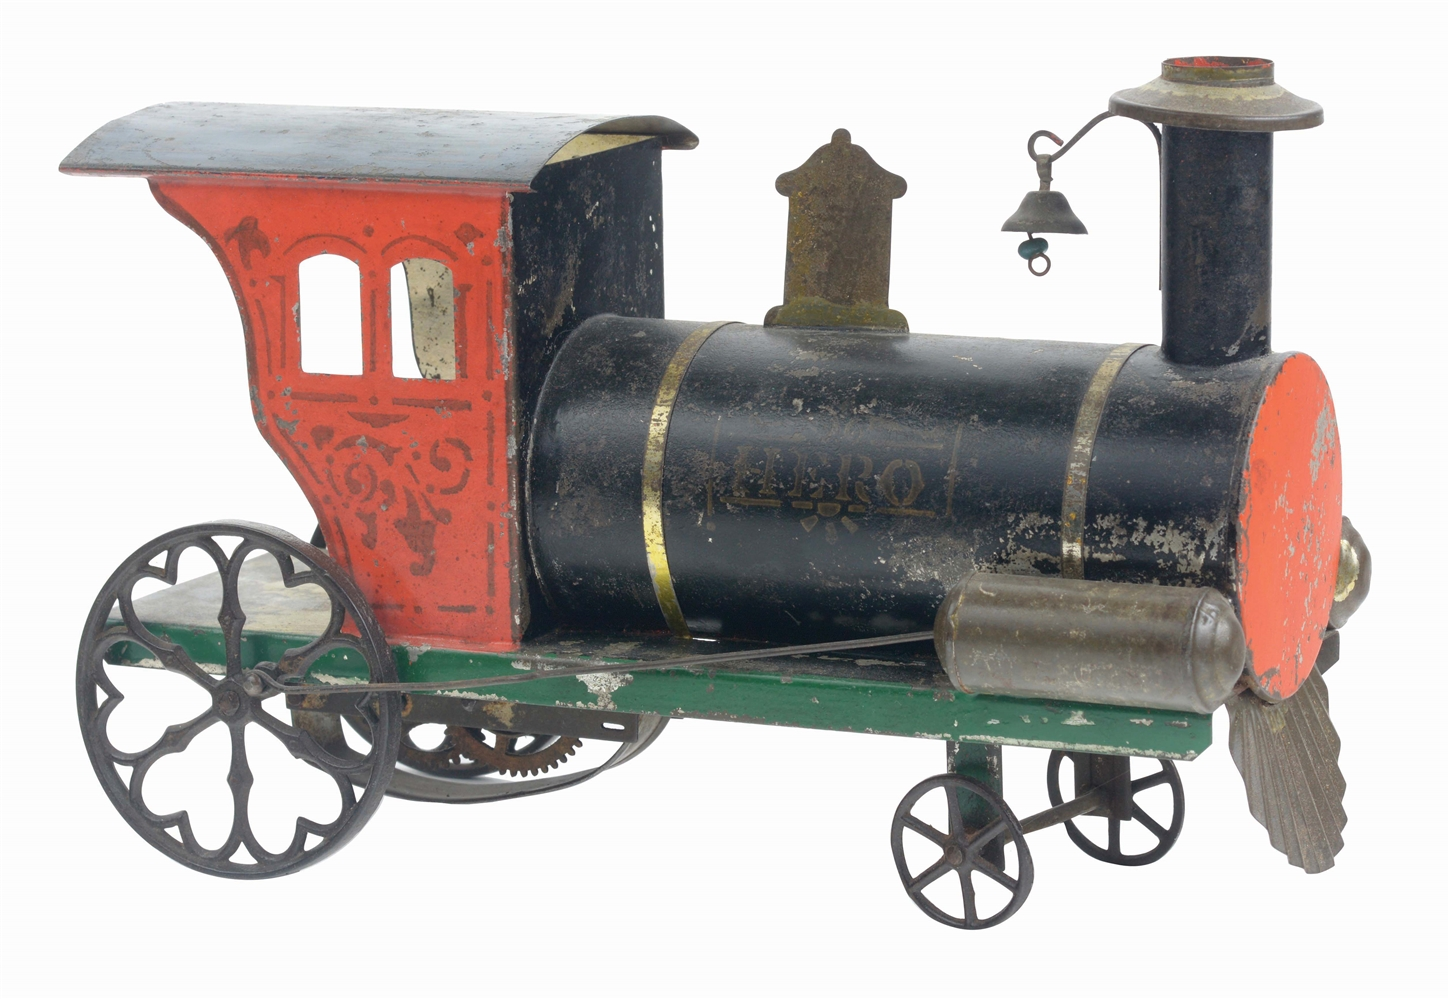 ATTRIBUTED TO IVES TIN HERO CLOCKWORK LOCOMOTIVE.